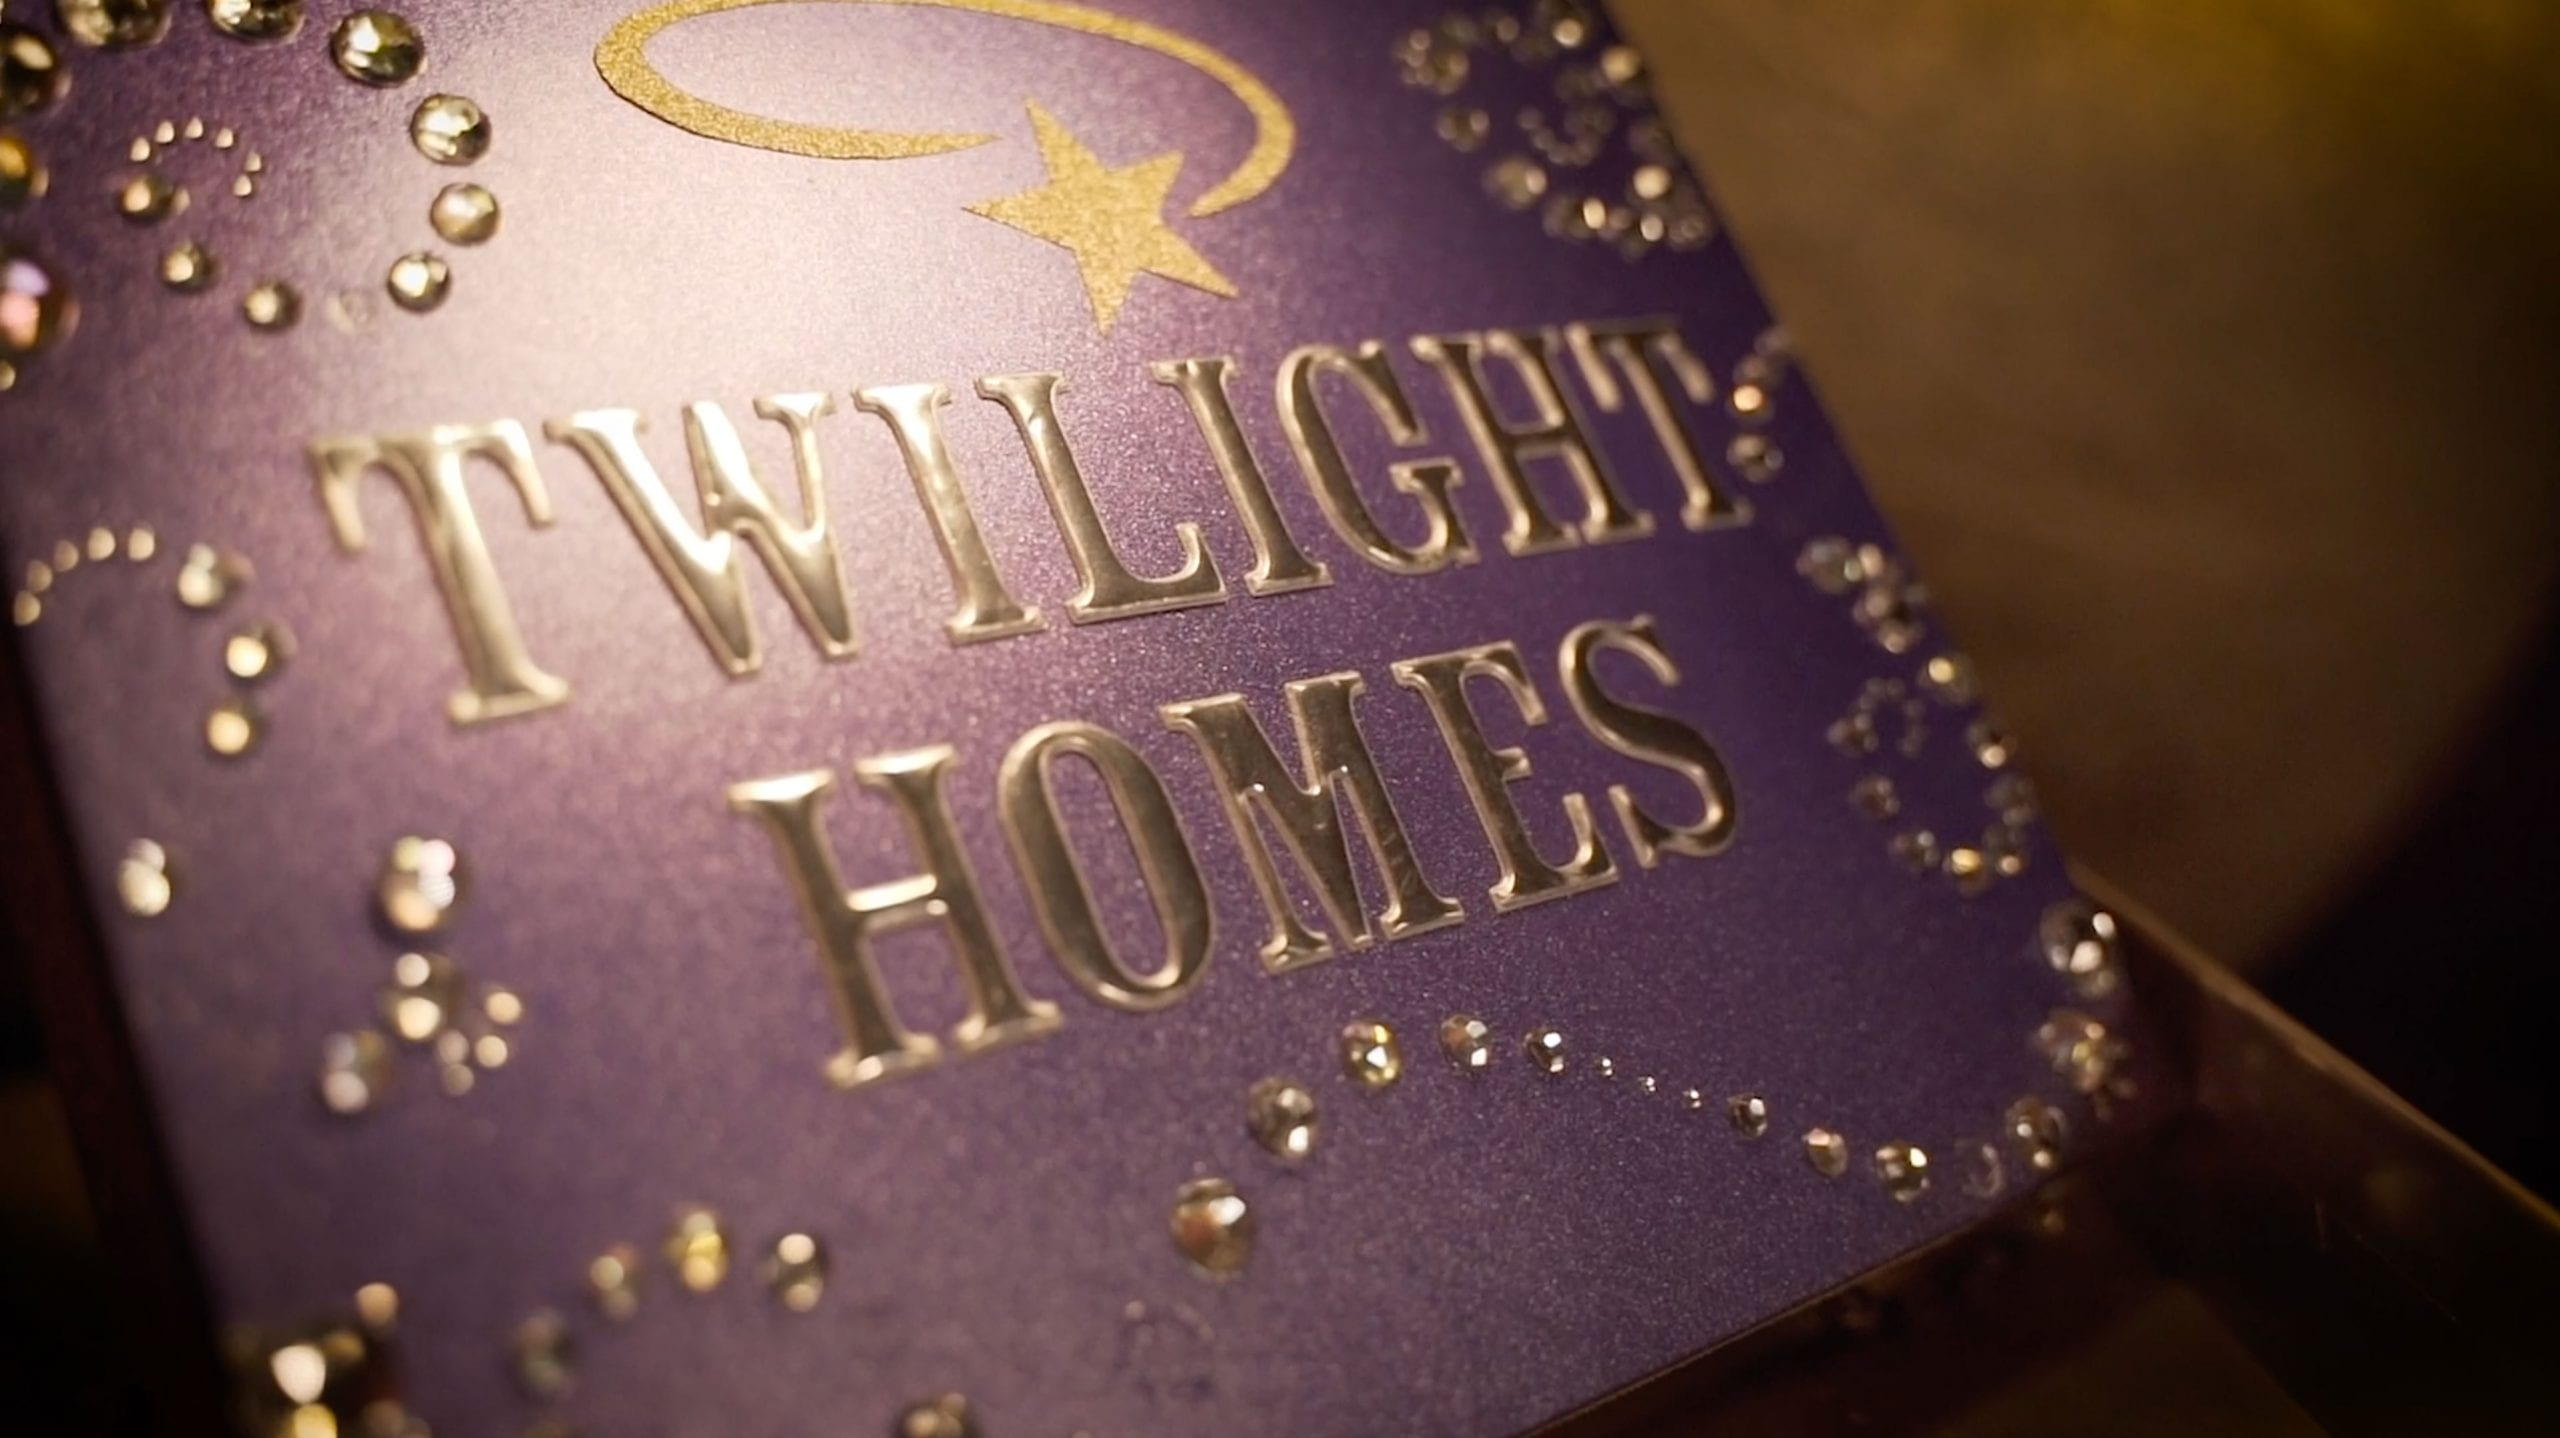 twilight-homes-vip-viewer-pack-reveal